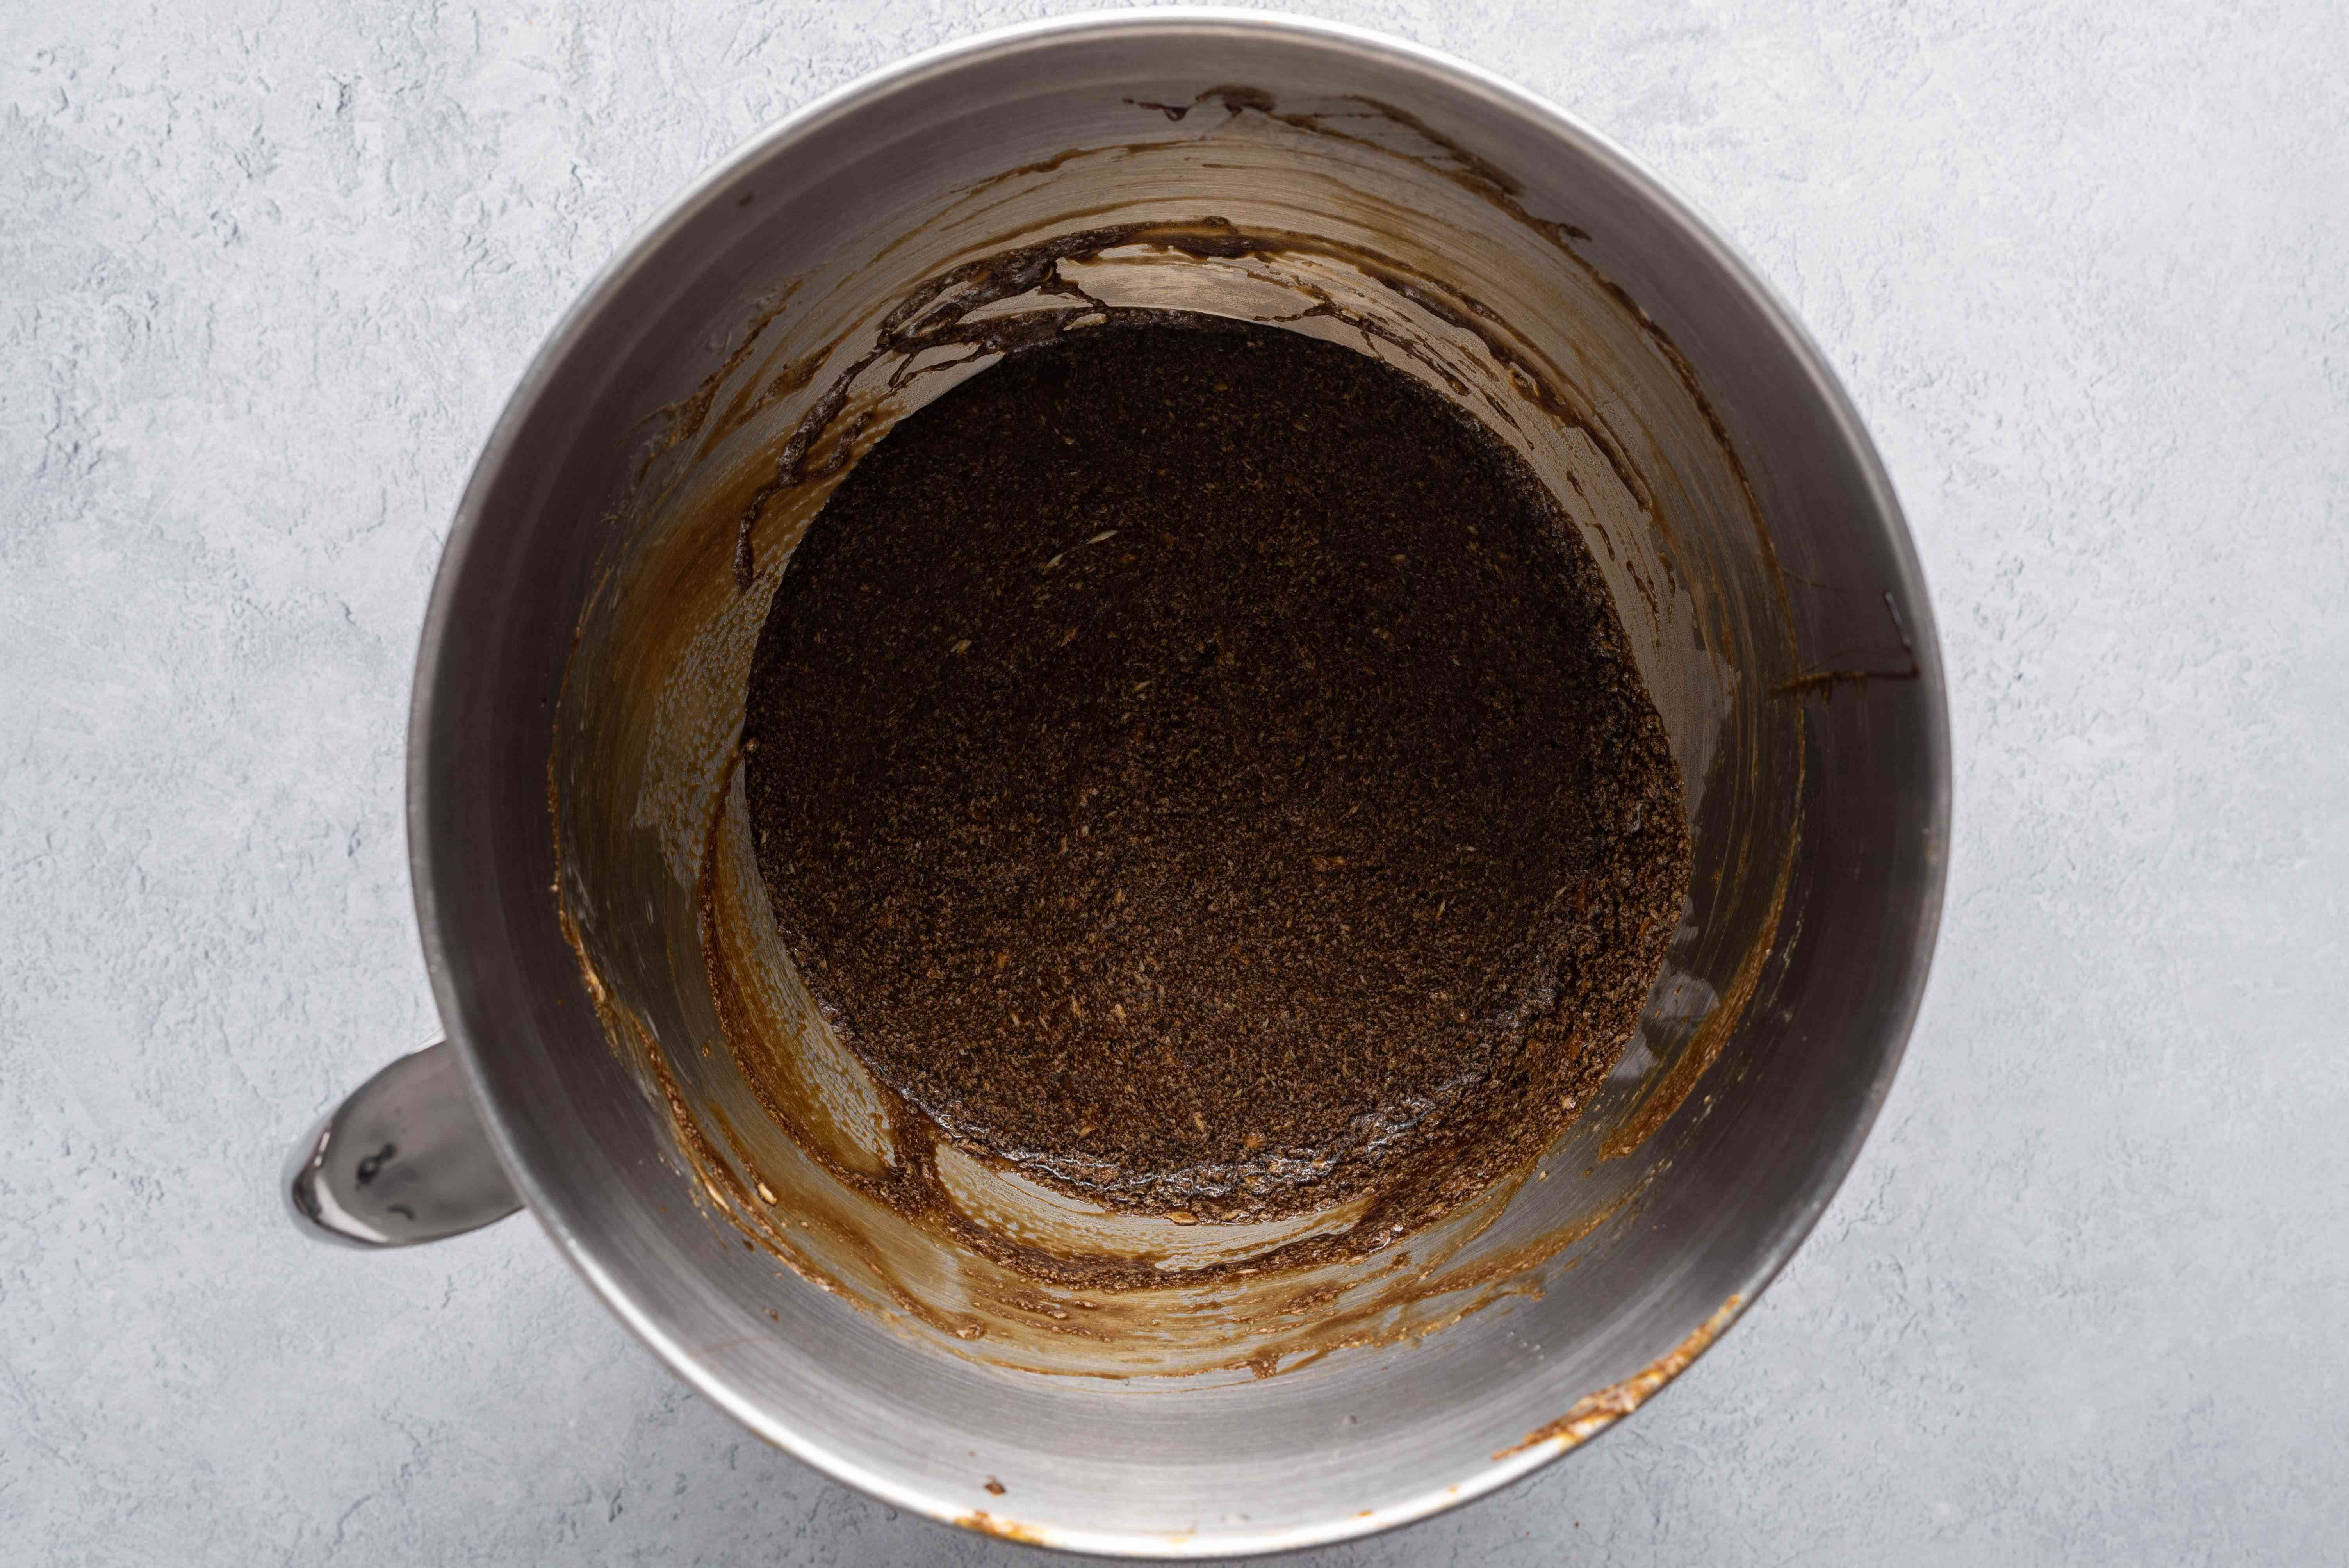 Add 2 eggs and 1 cup of molasses to the butter